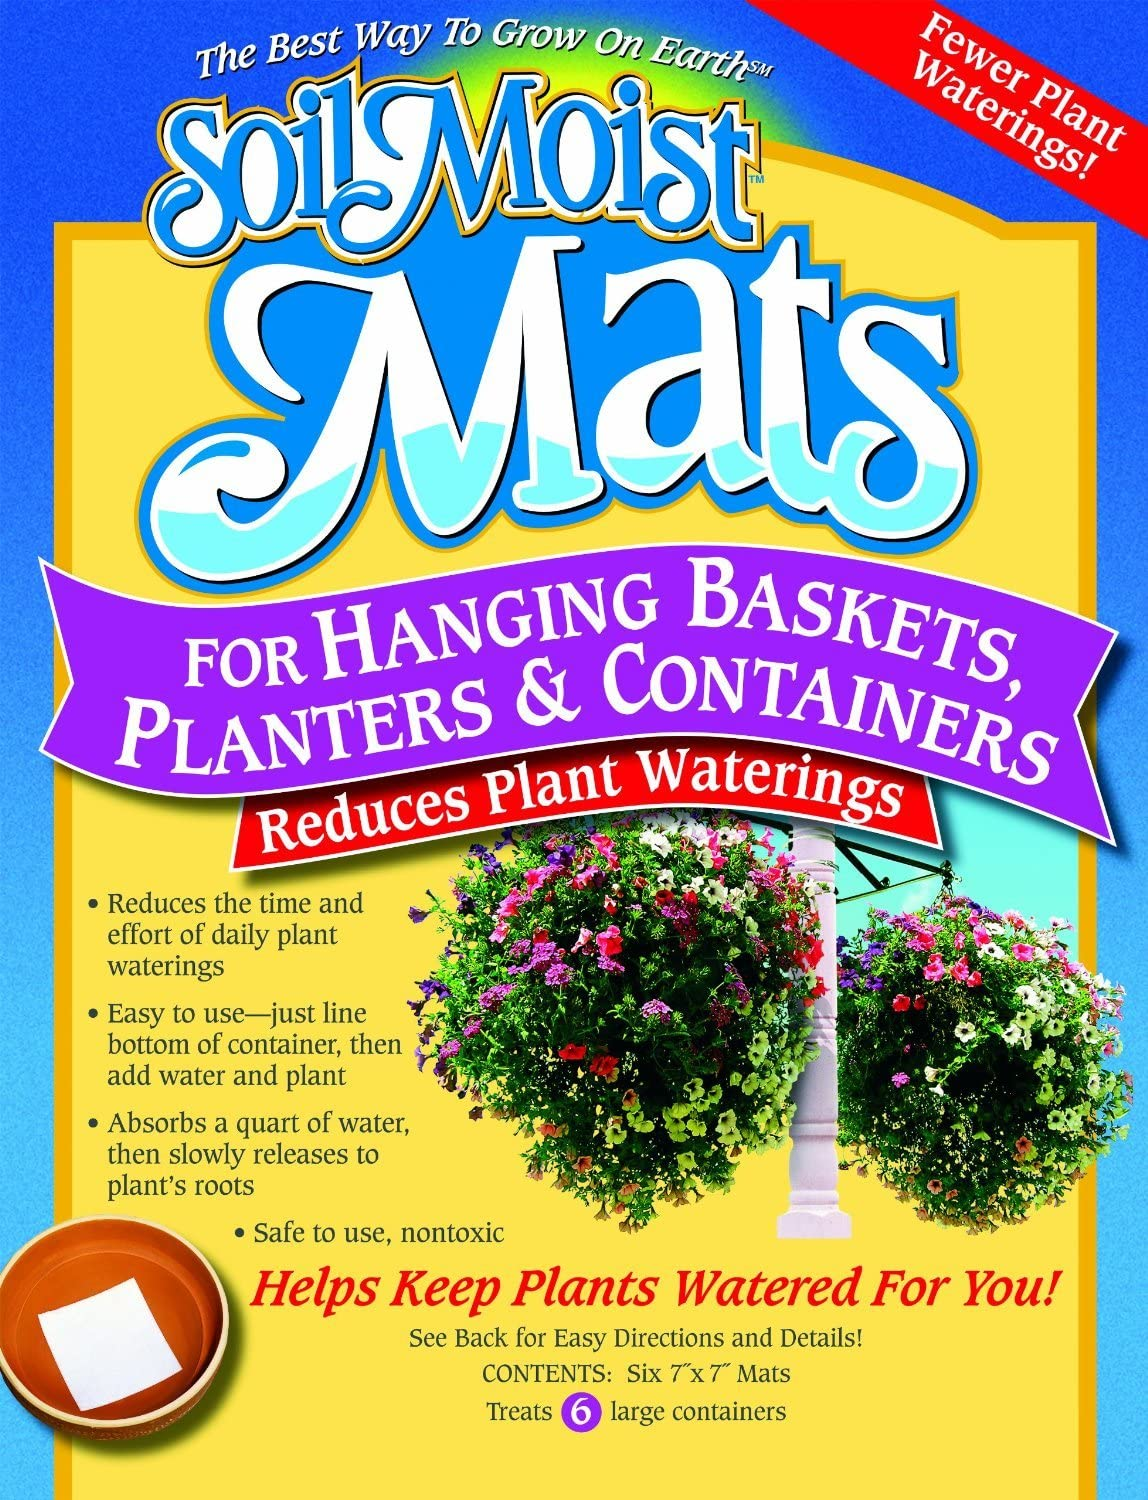 Soil Moist Watering Polymer Plant Mats - Line Baskets and Containers and Reduce Plant Waterings By 50%